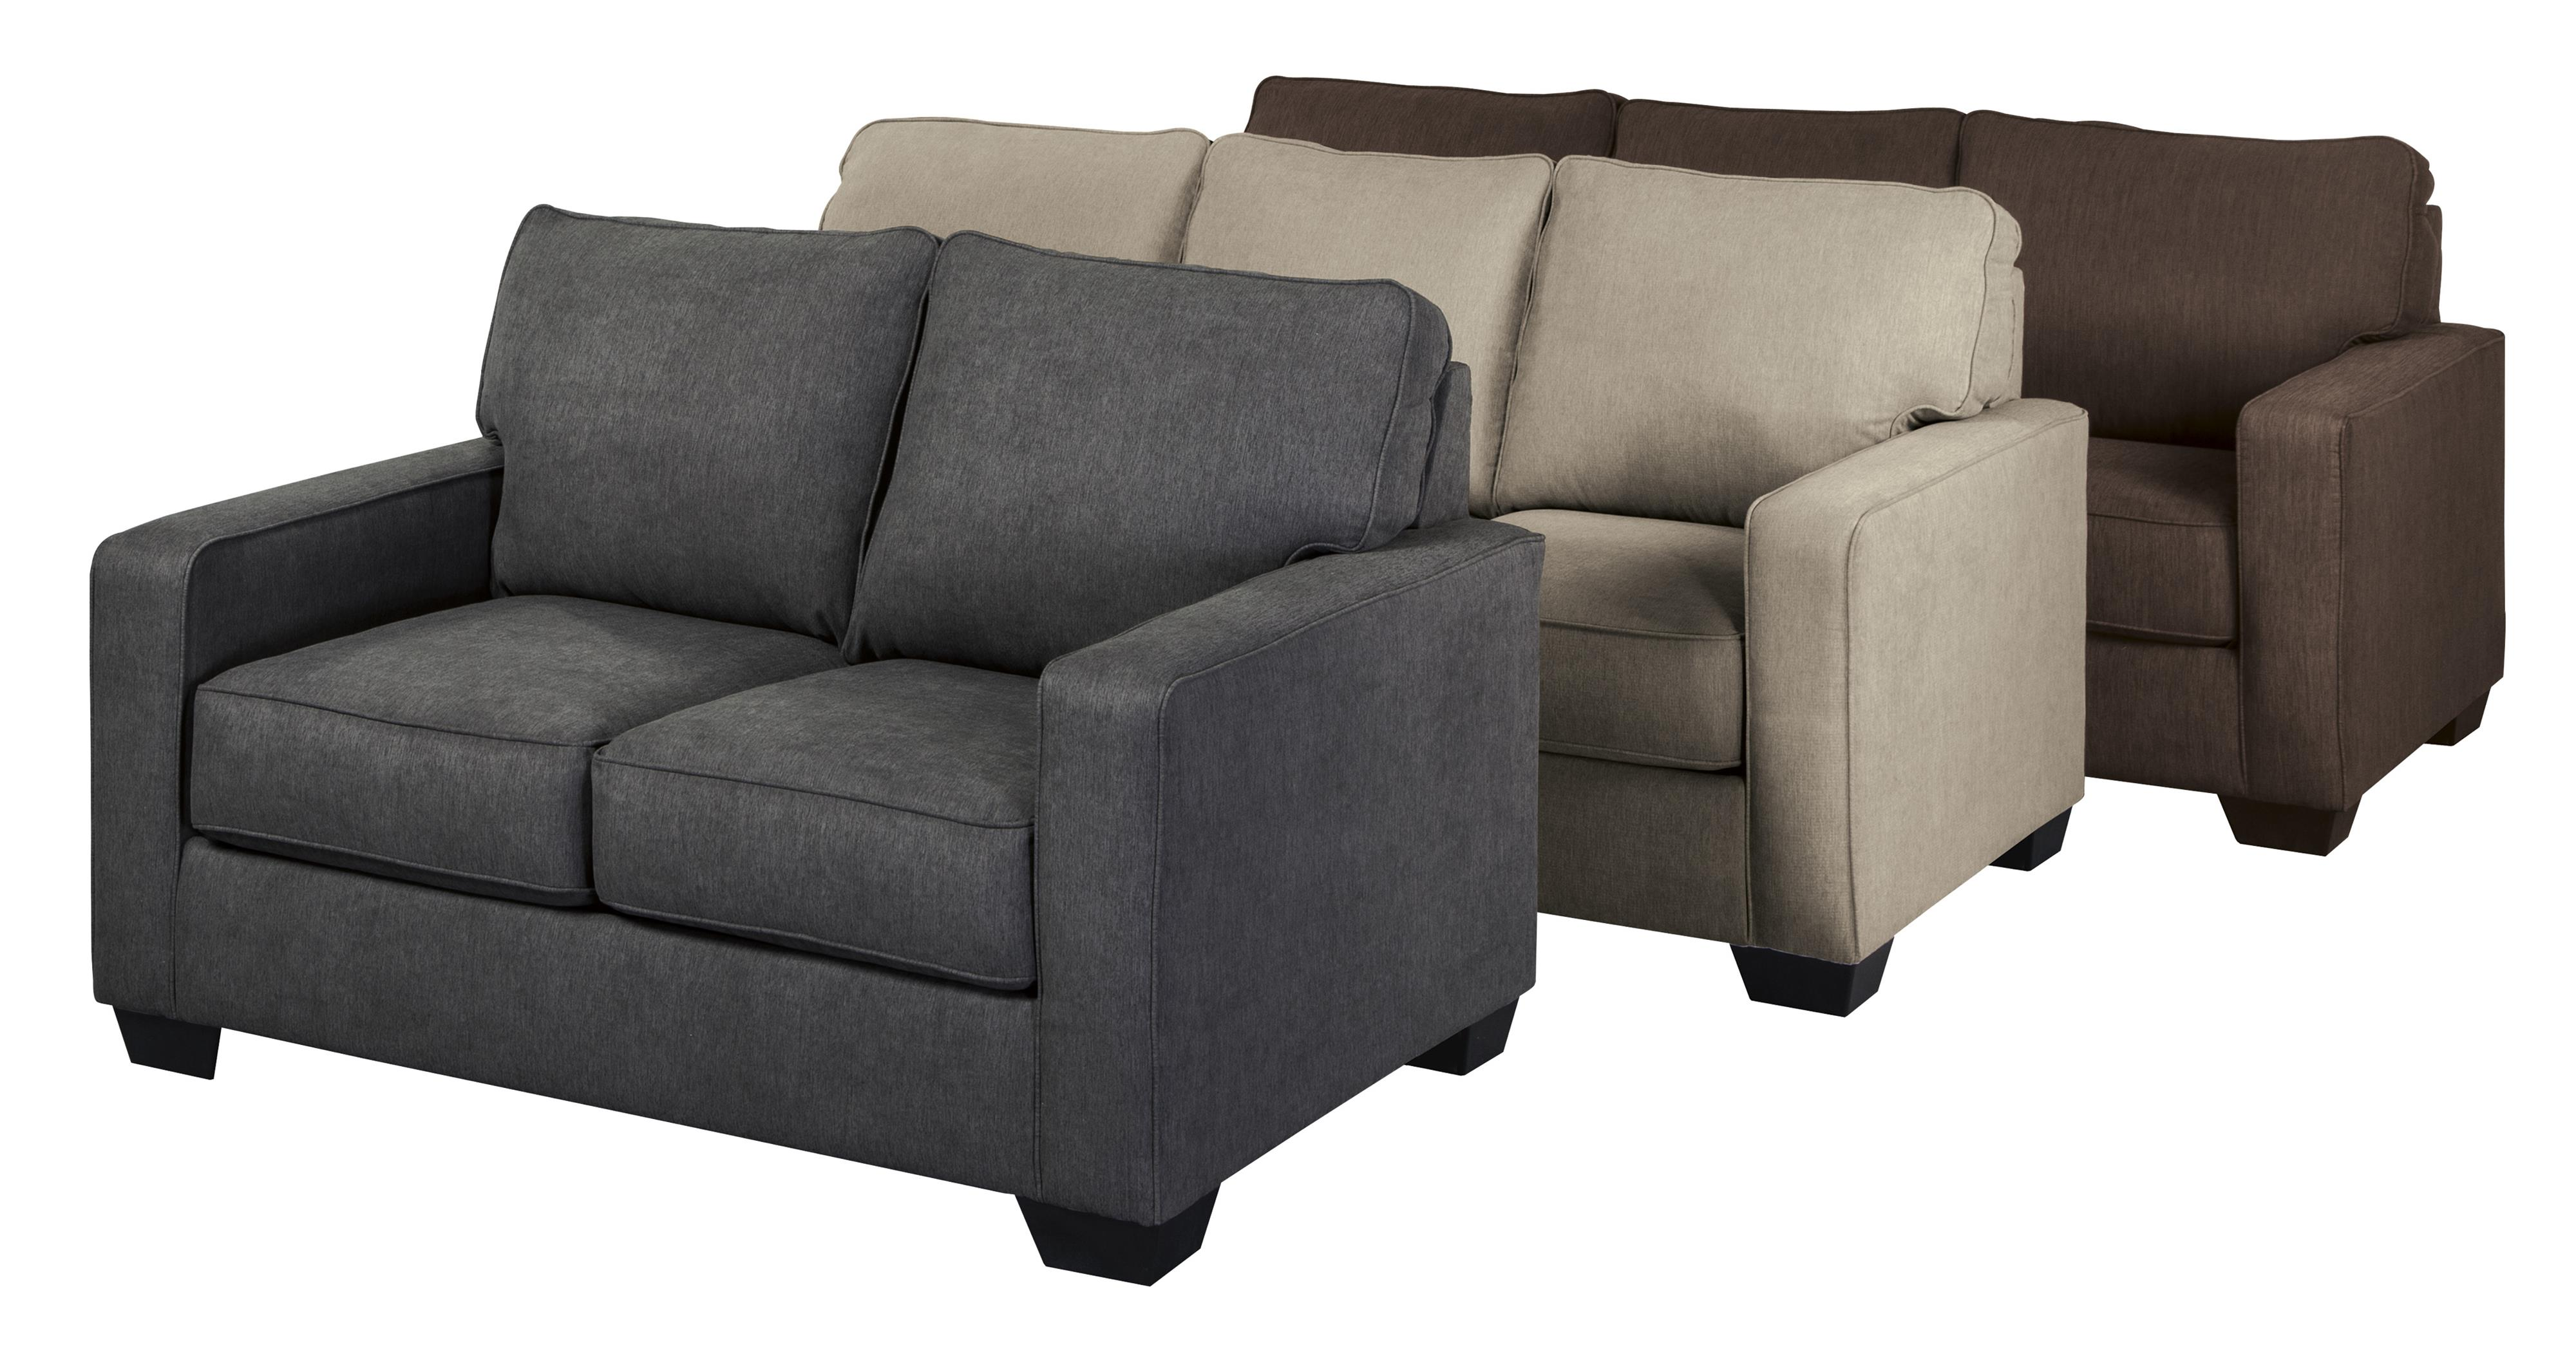 Sleeper Chairs Amazon Twin Sofa Sleeper With Memory Foam Mattress By Signature